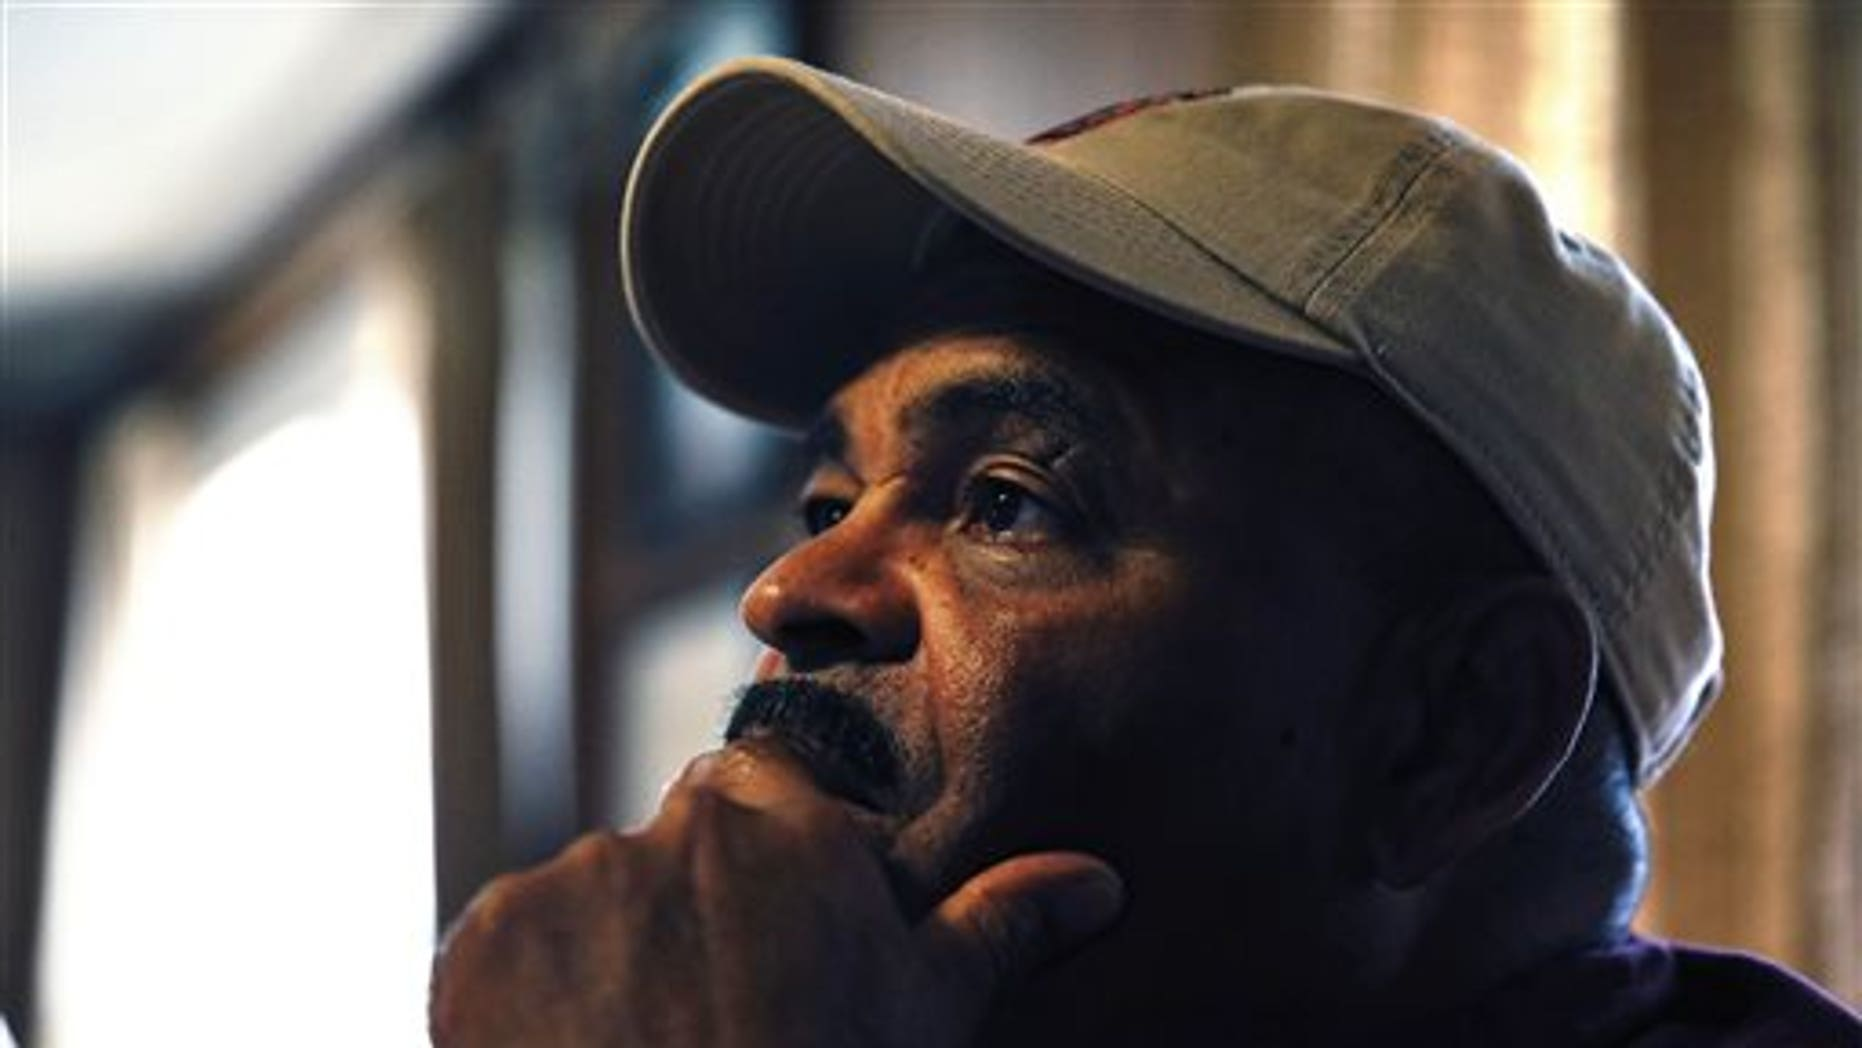 In this March 16, 2015 photo, retired U.S. Army Sgt. 1st Class Marshall Powell sits at the dining room table and pauses while talking about his emotionally traumatic experiences serving as a military nurse in northern Iraq in 2007, during one of the bloodiest years of the conflict, at Powell's home in Crescent, Okla. (AP Photo/Brennan Linsley)